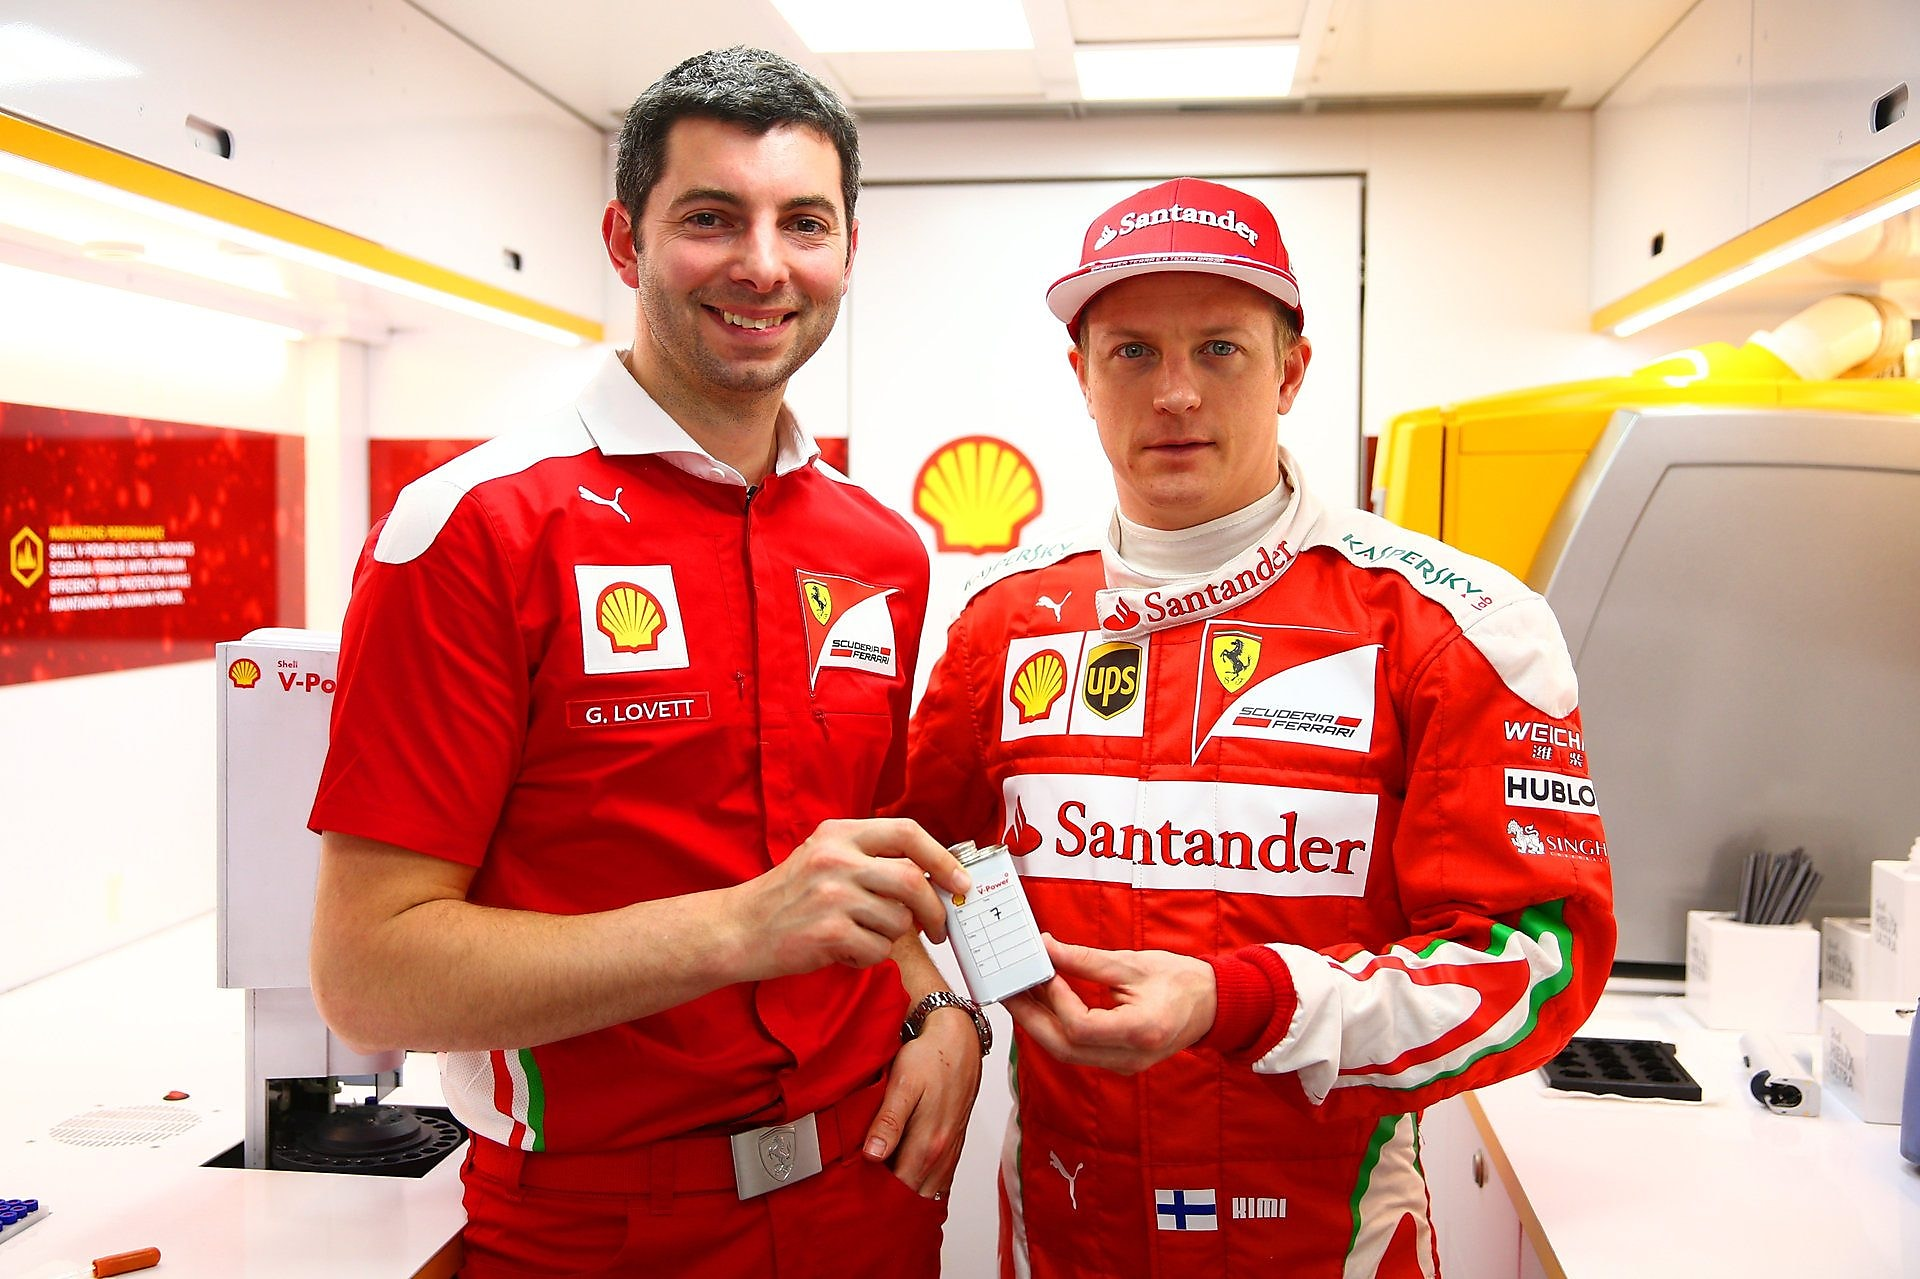 Guy Lovett ve Kimi Raikkonen shell v-power'ı tanıtıyor